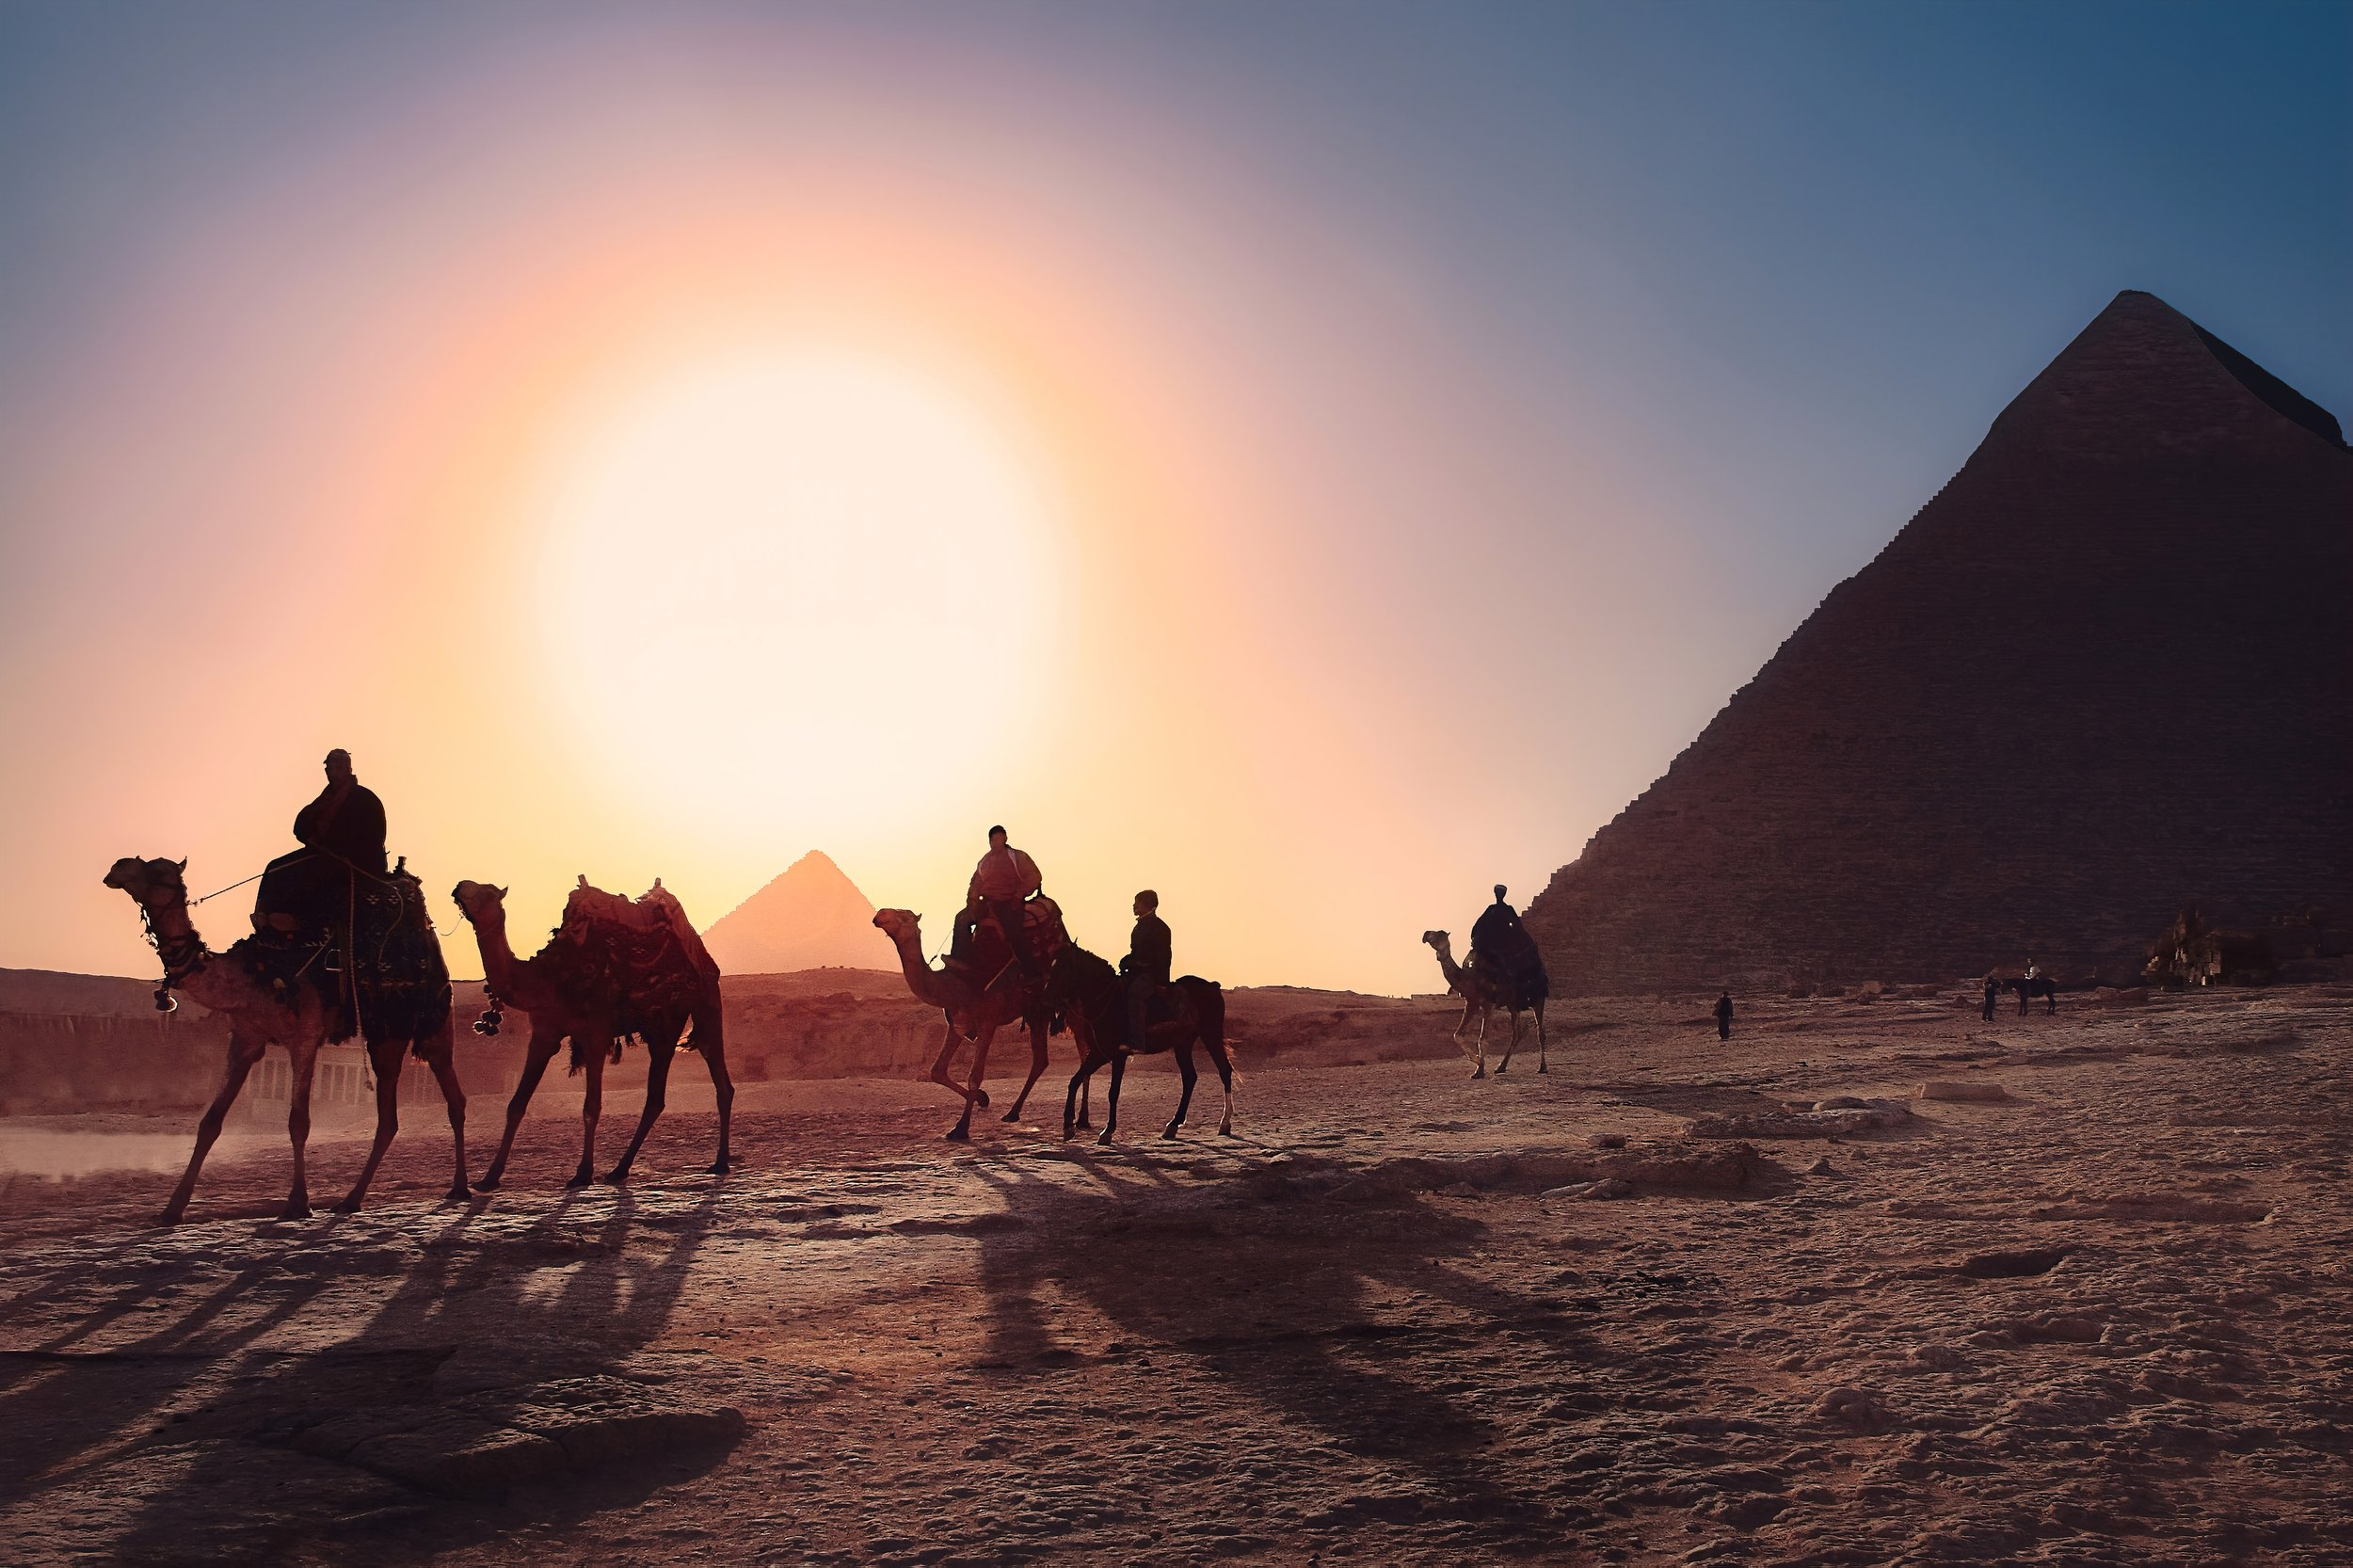 EGYPT - TRAVEL FOR A PURPOSE